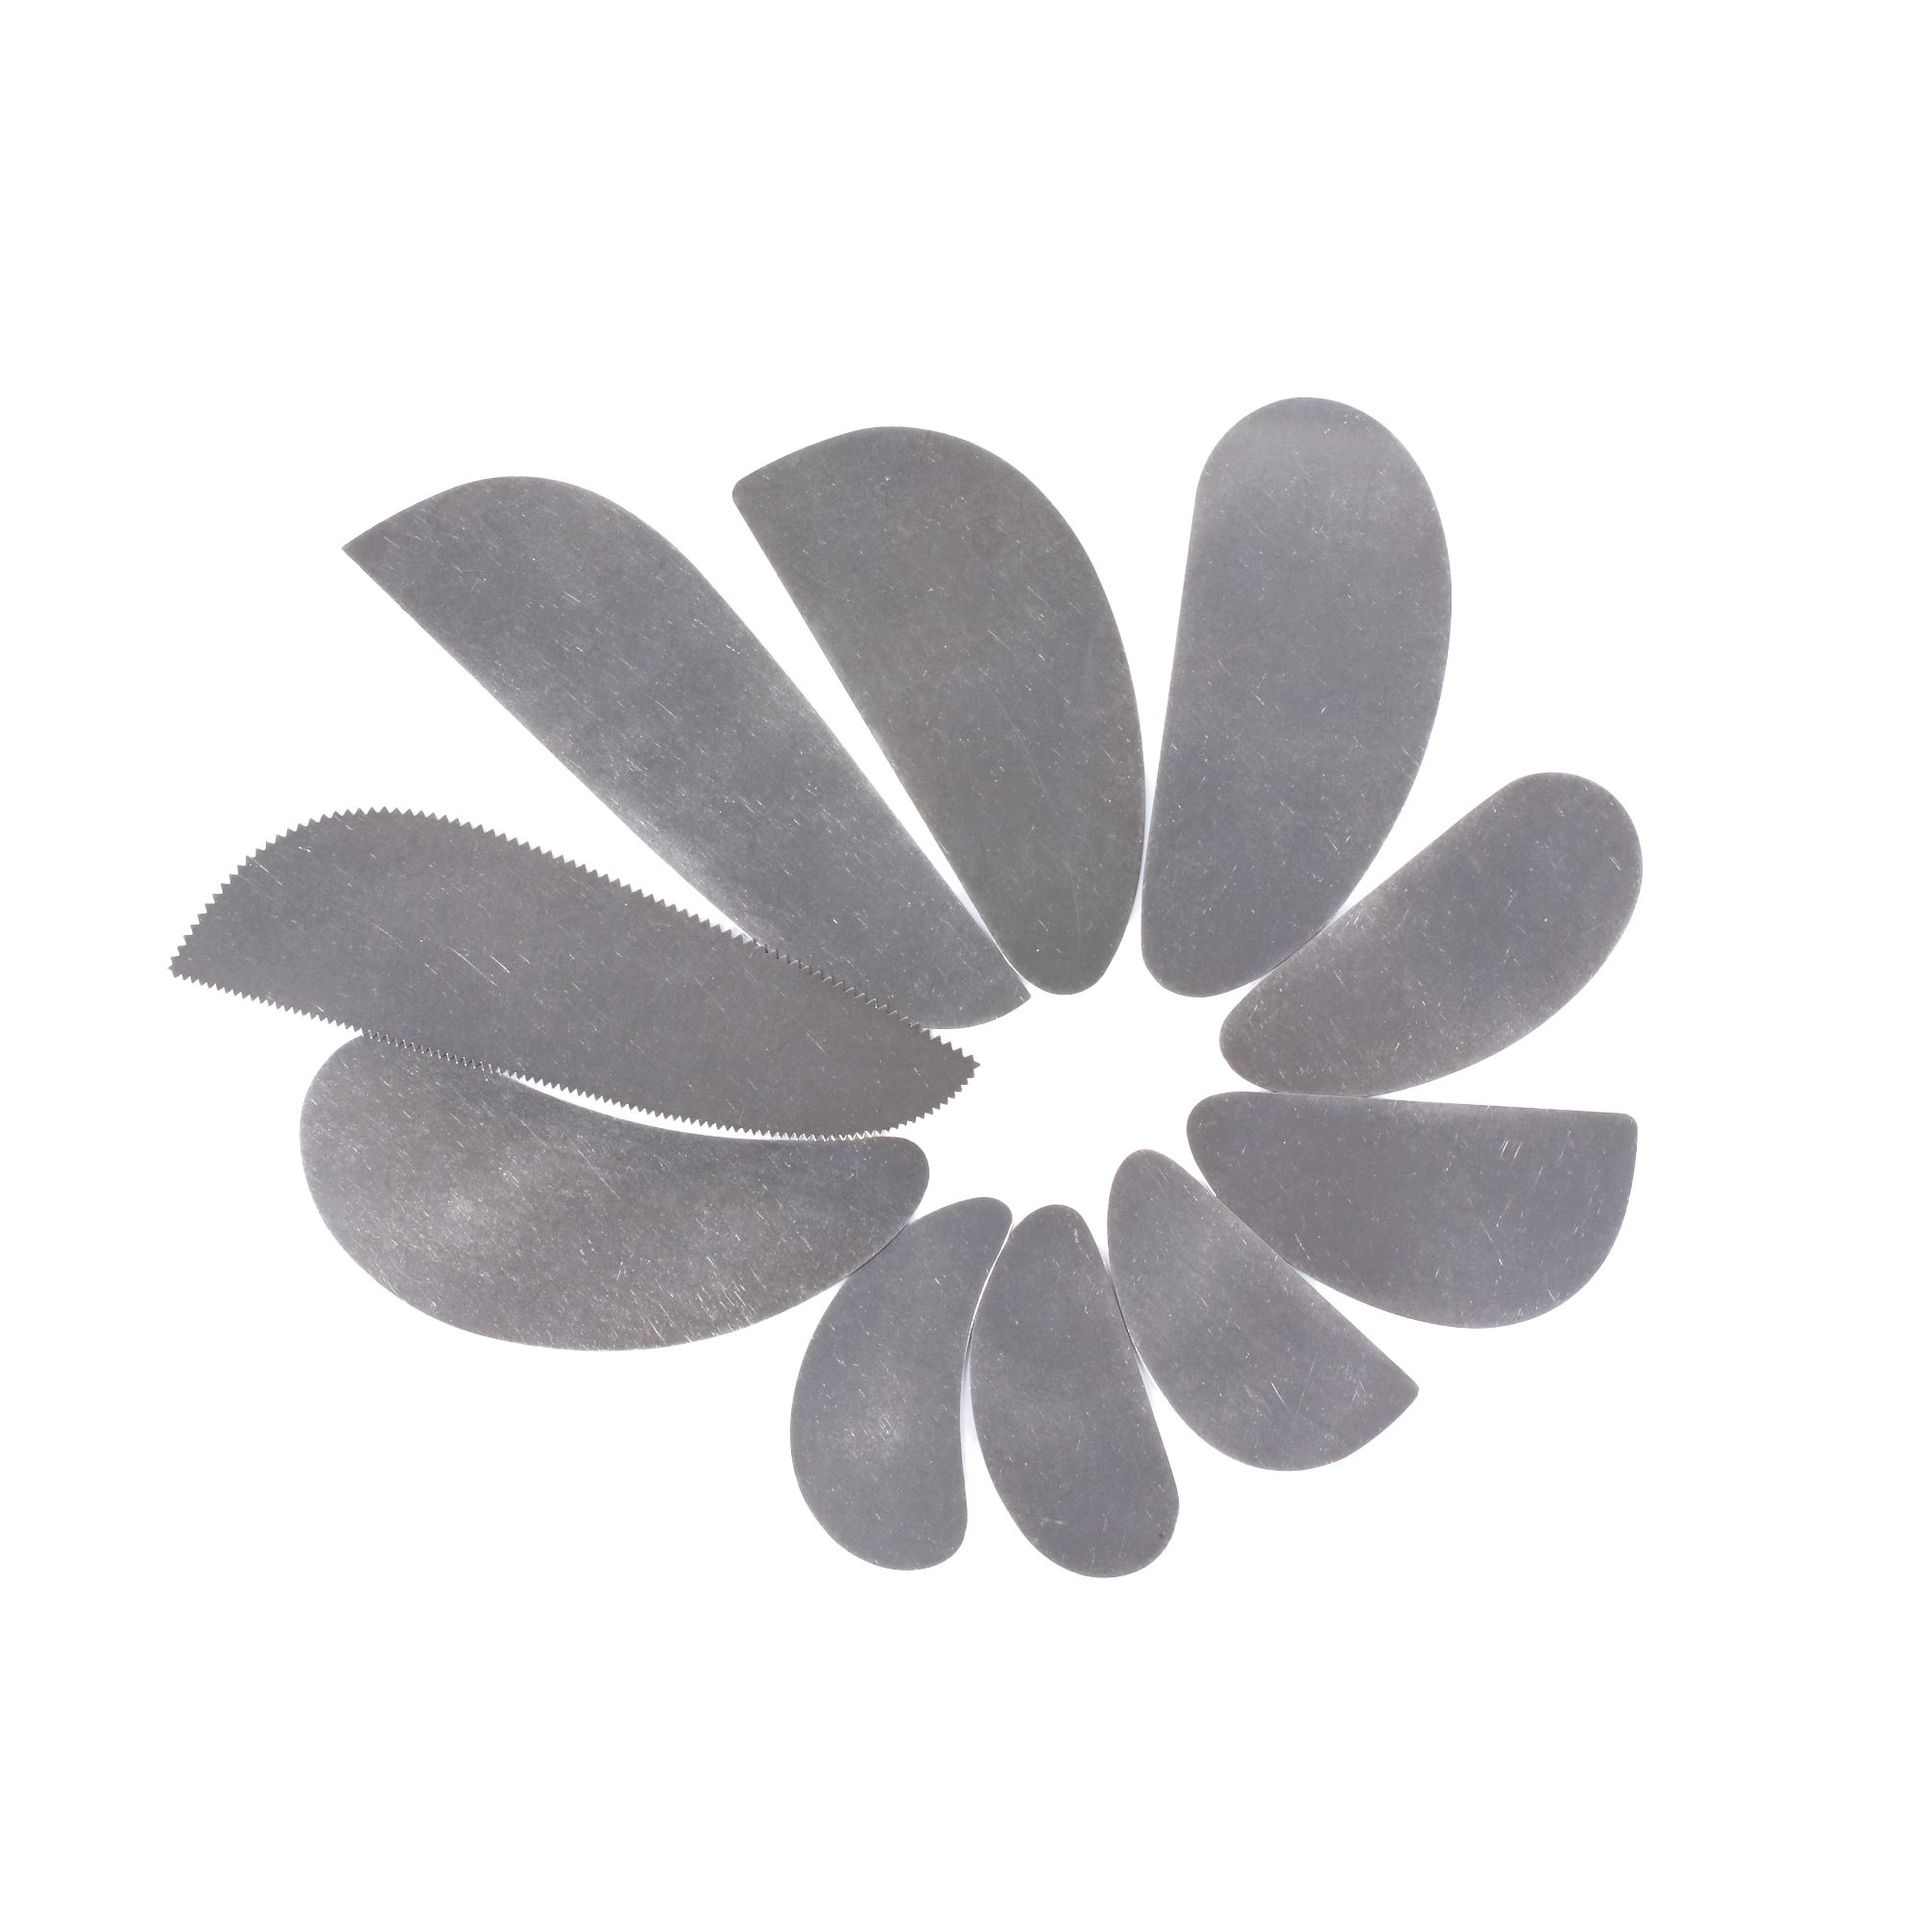 10pcs Ceramic Pottery Polymer Clay Tools Long Paisley Stainless Steel Ribs Art Supplies